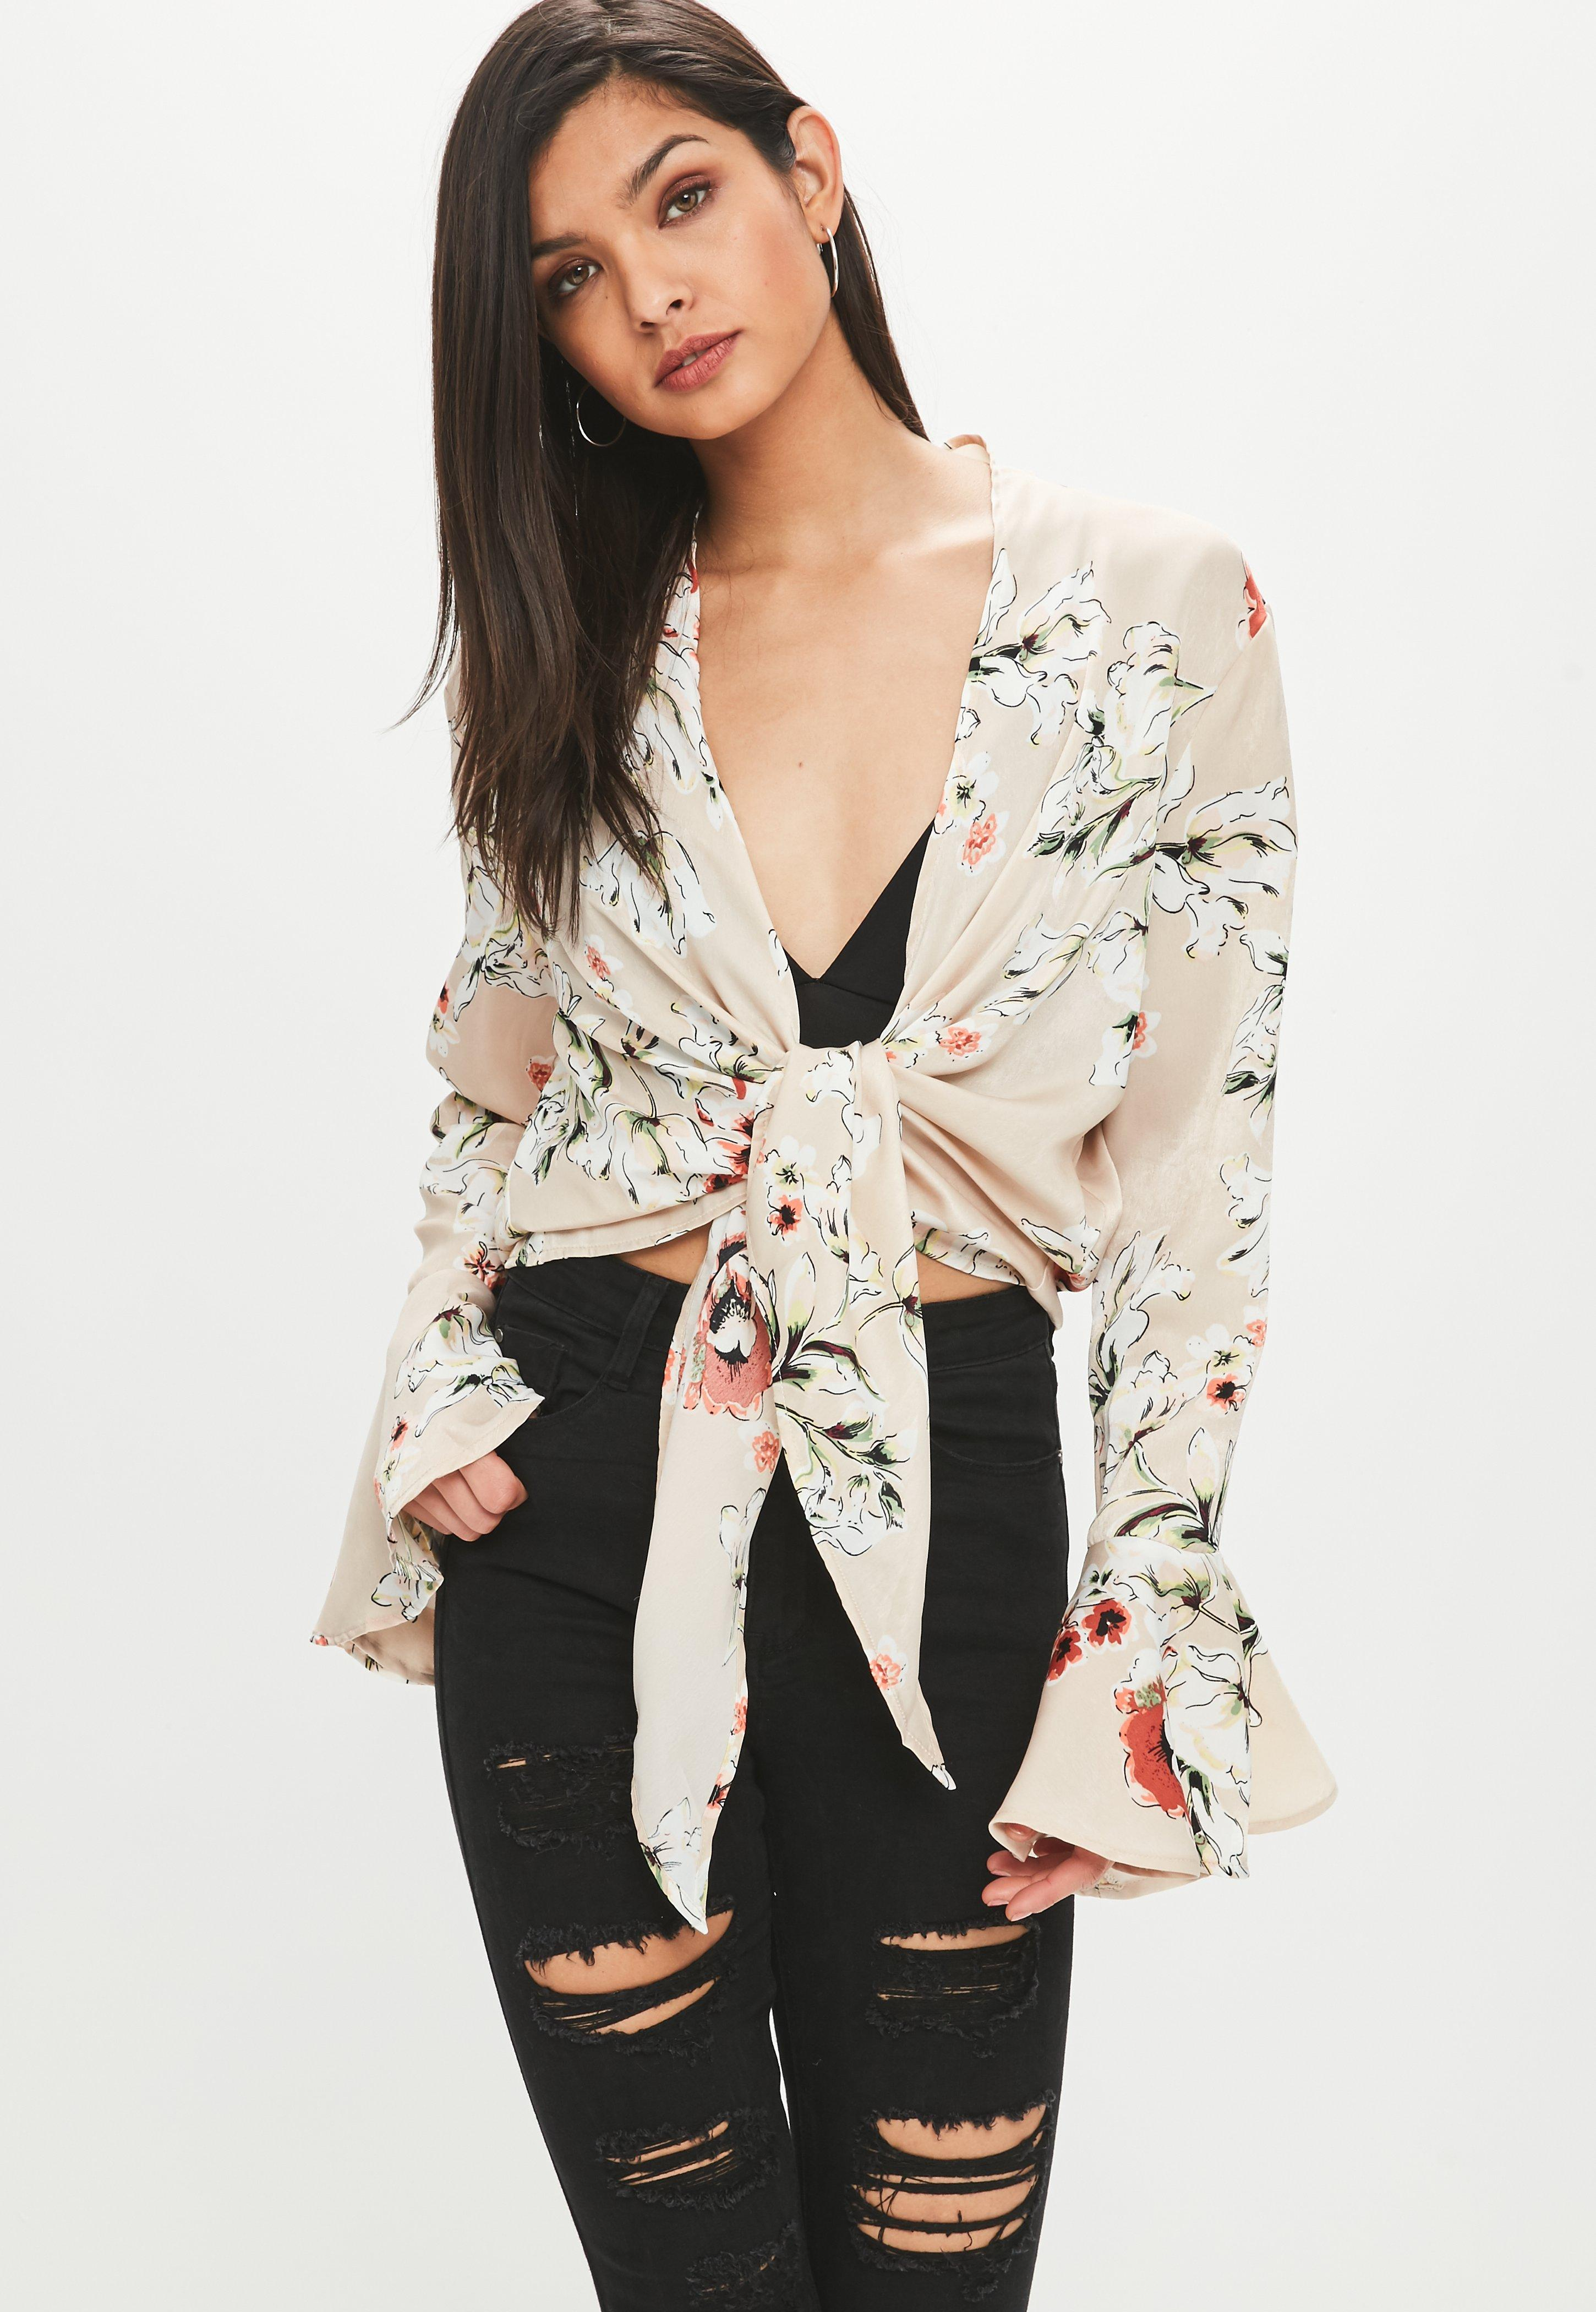 Missguided Flared Sleeve Knot Front Blouse 2018 For Sale yWl8nvu9AK